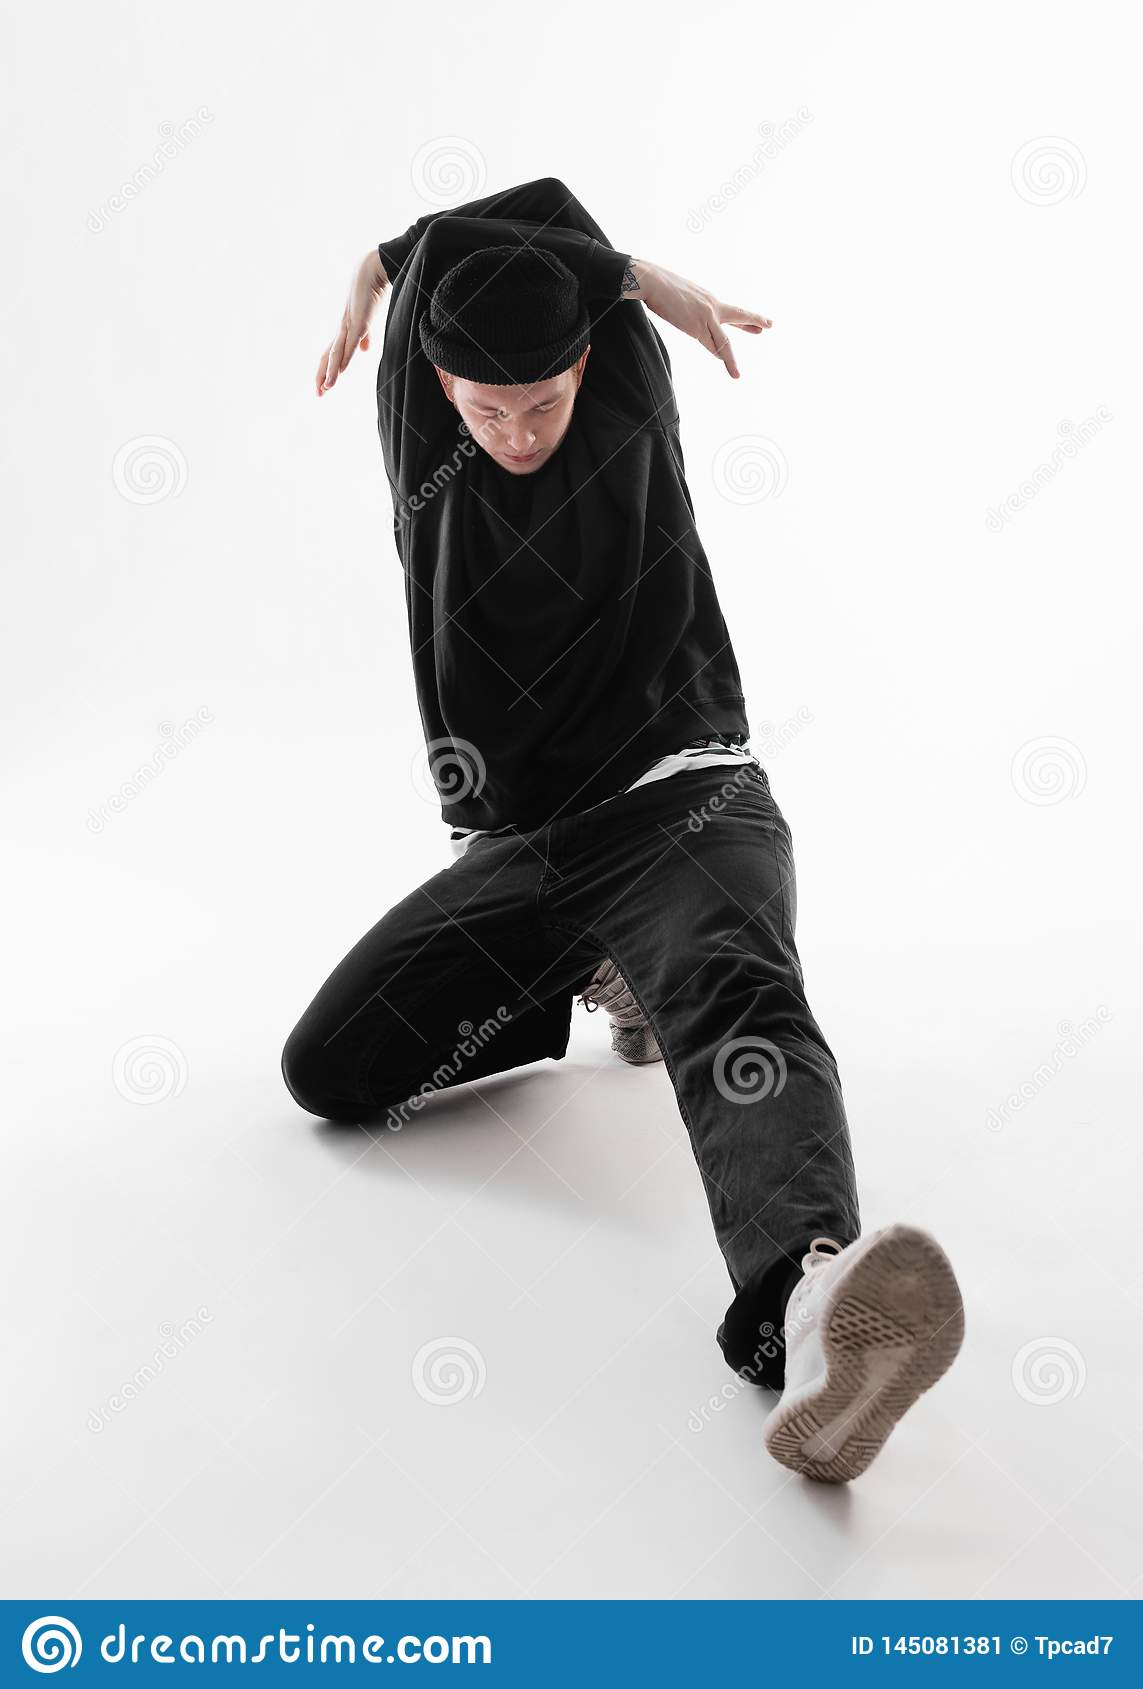 Freestyle dancer dressed in black jeans, sweatshirt, hat and gray sneakers is dancing squatting in the studio on the